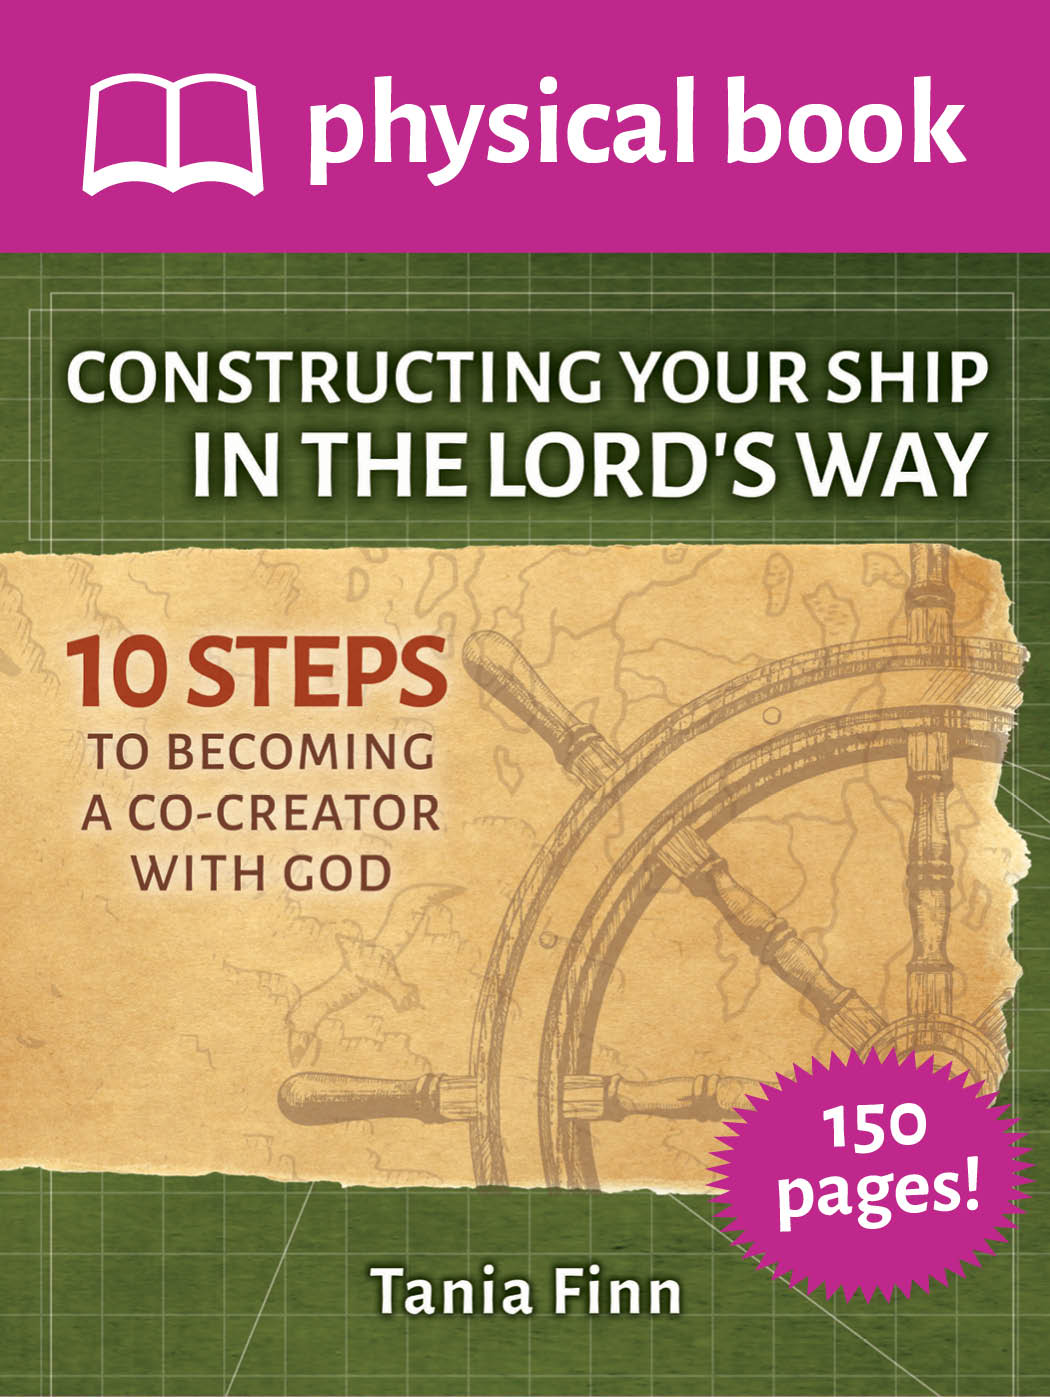 Constructing Your Ship in the Lord's Way – physical book